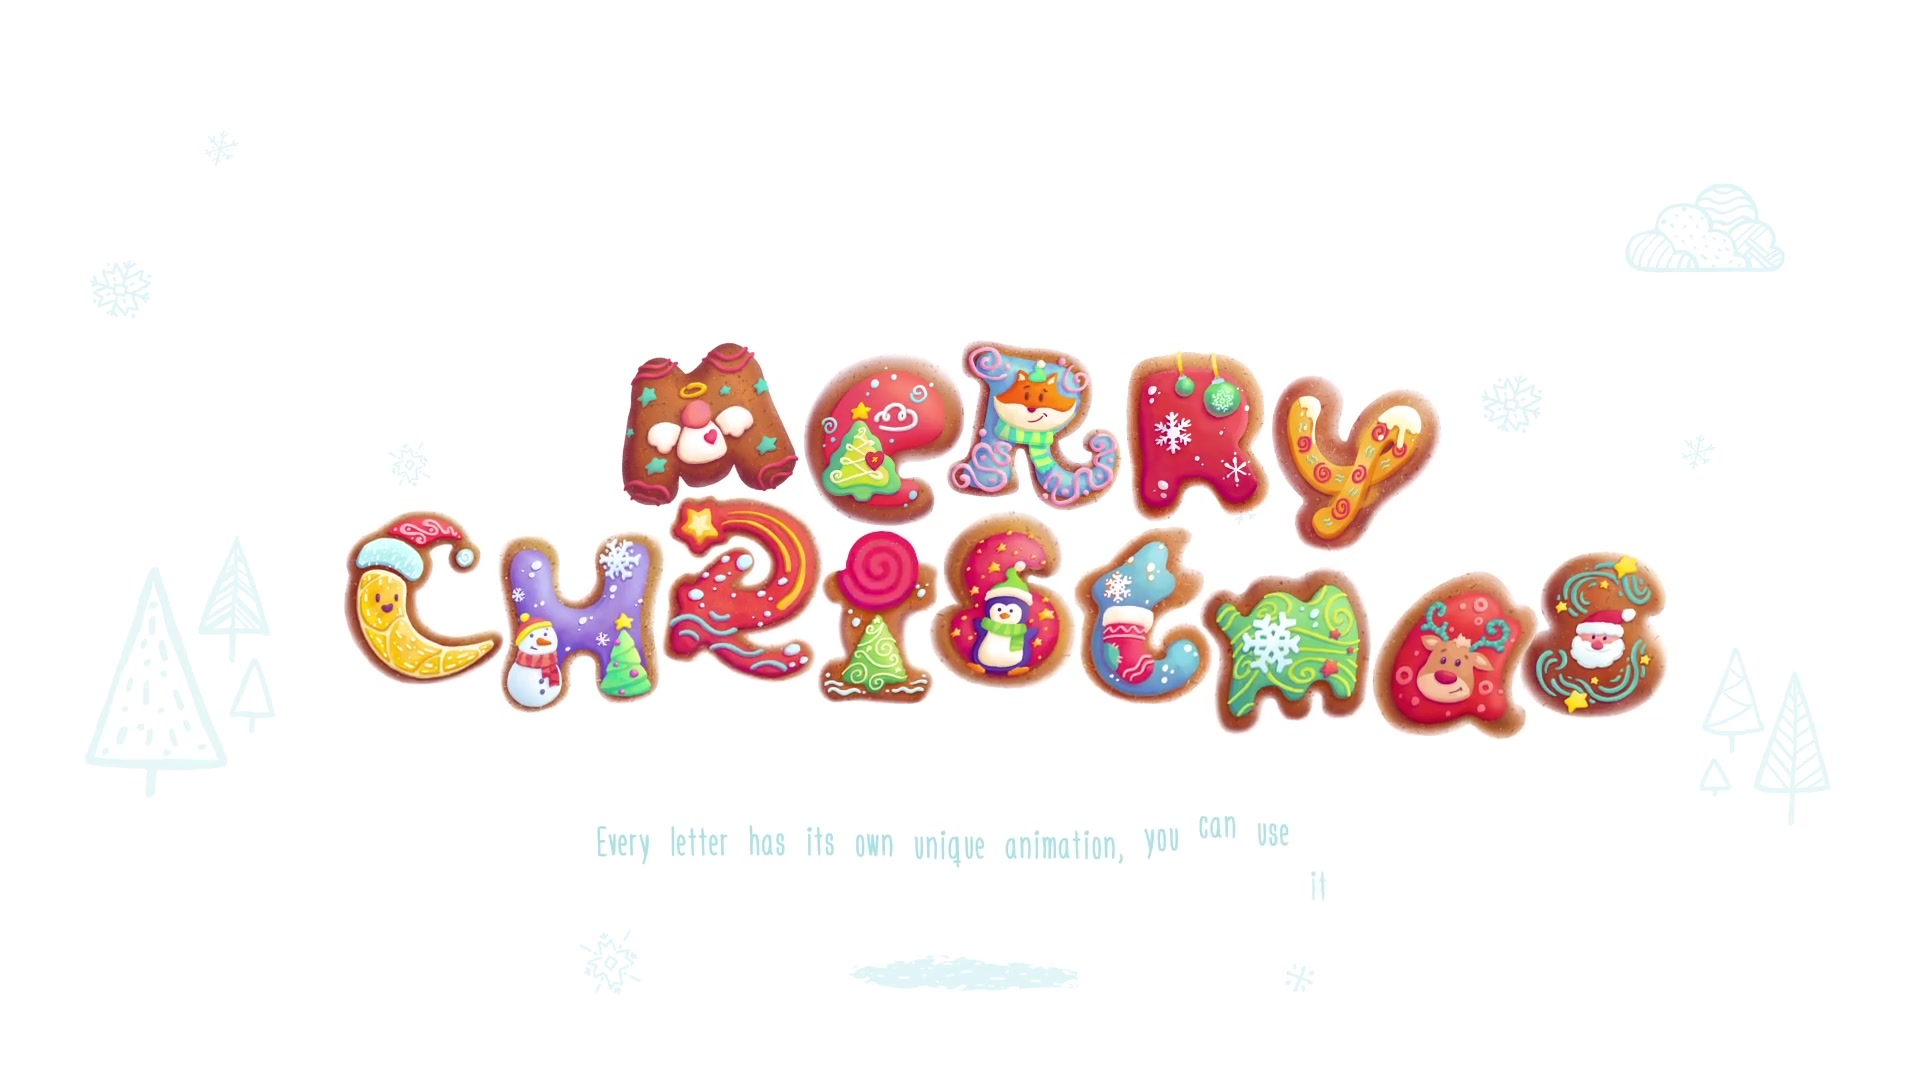 Christmas and New Year Greeting Cards - Download Videohive 22749899